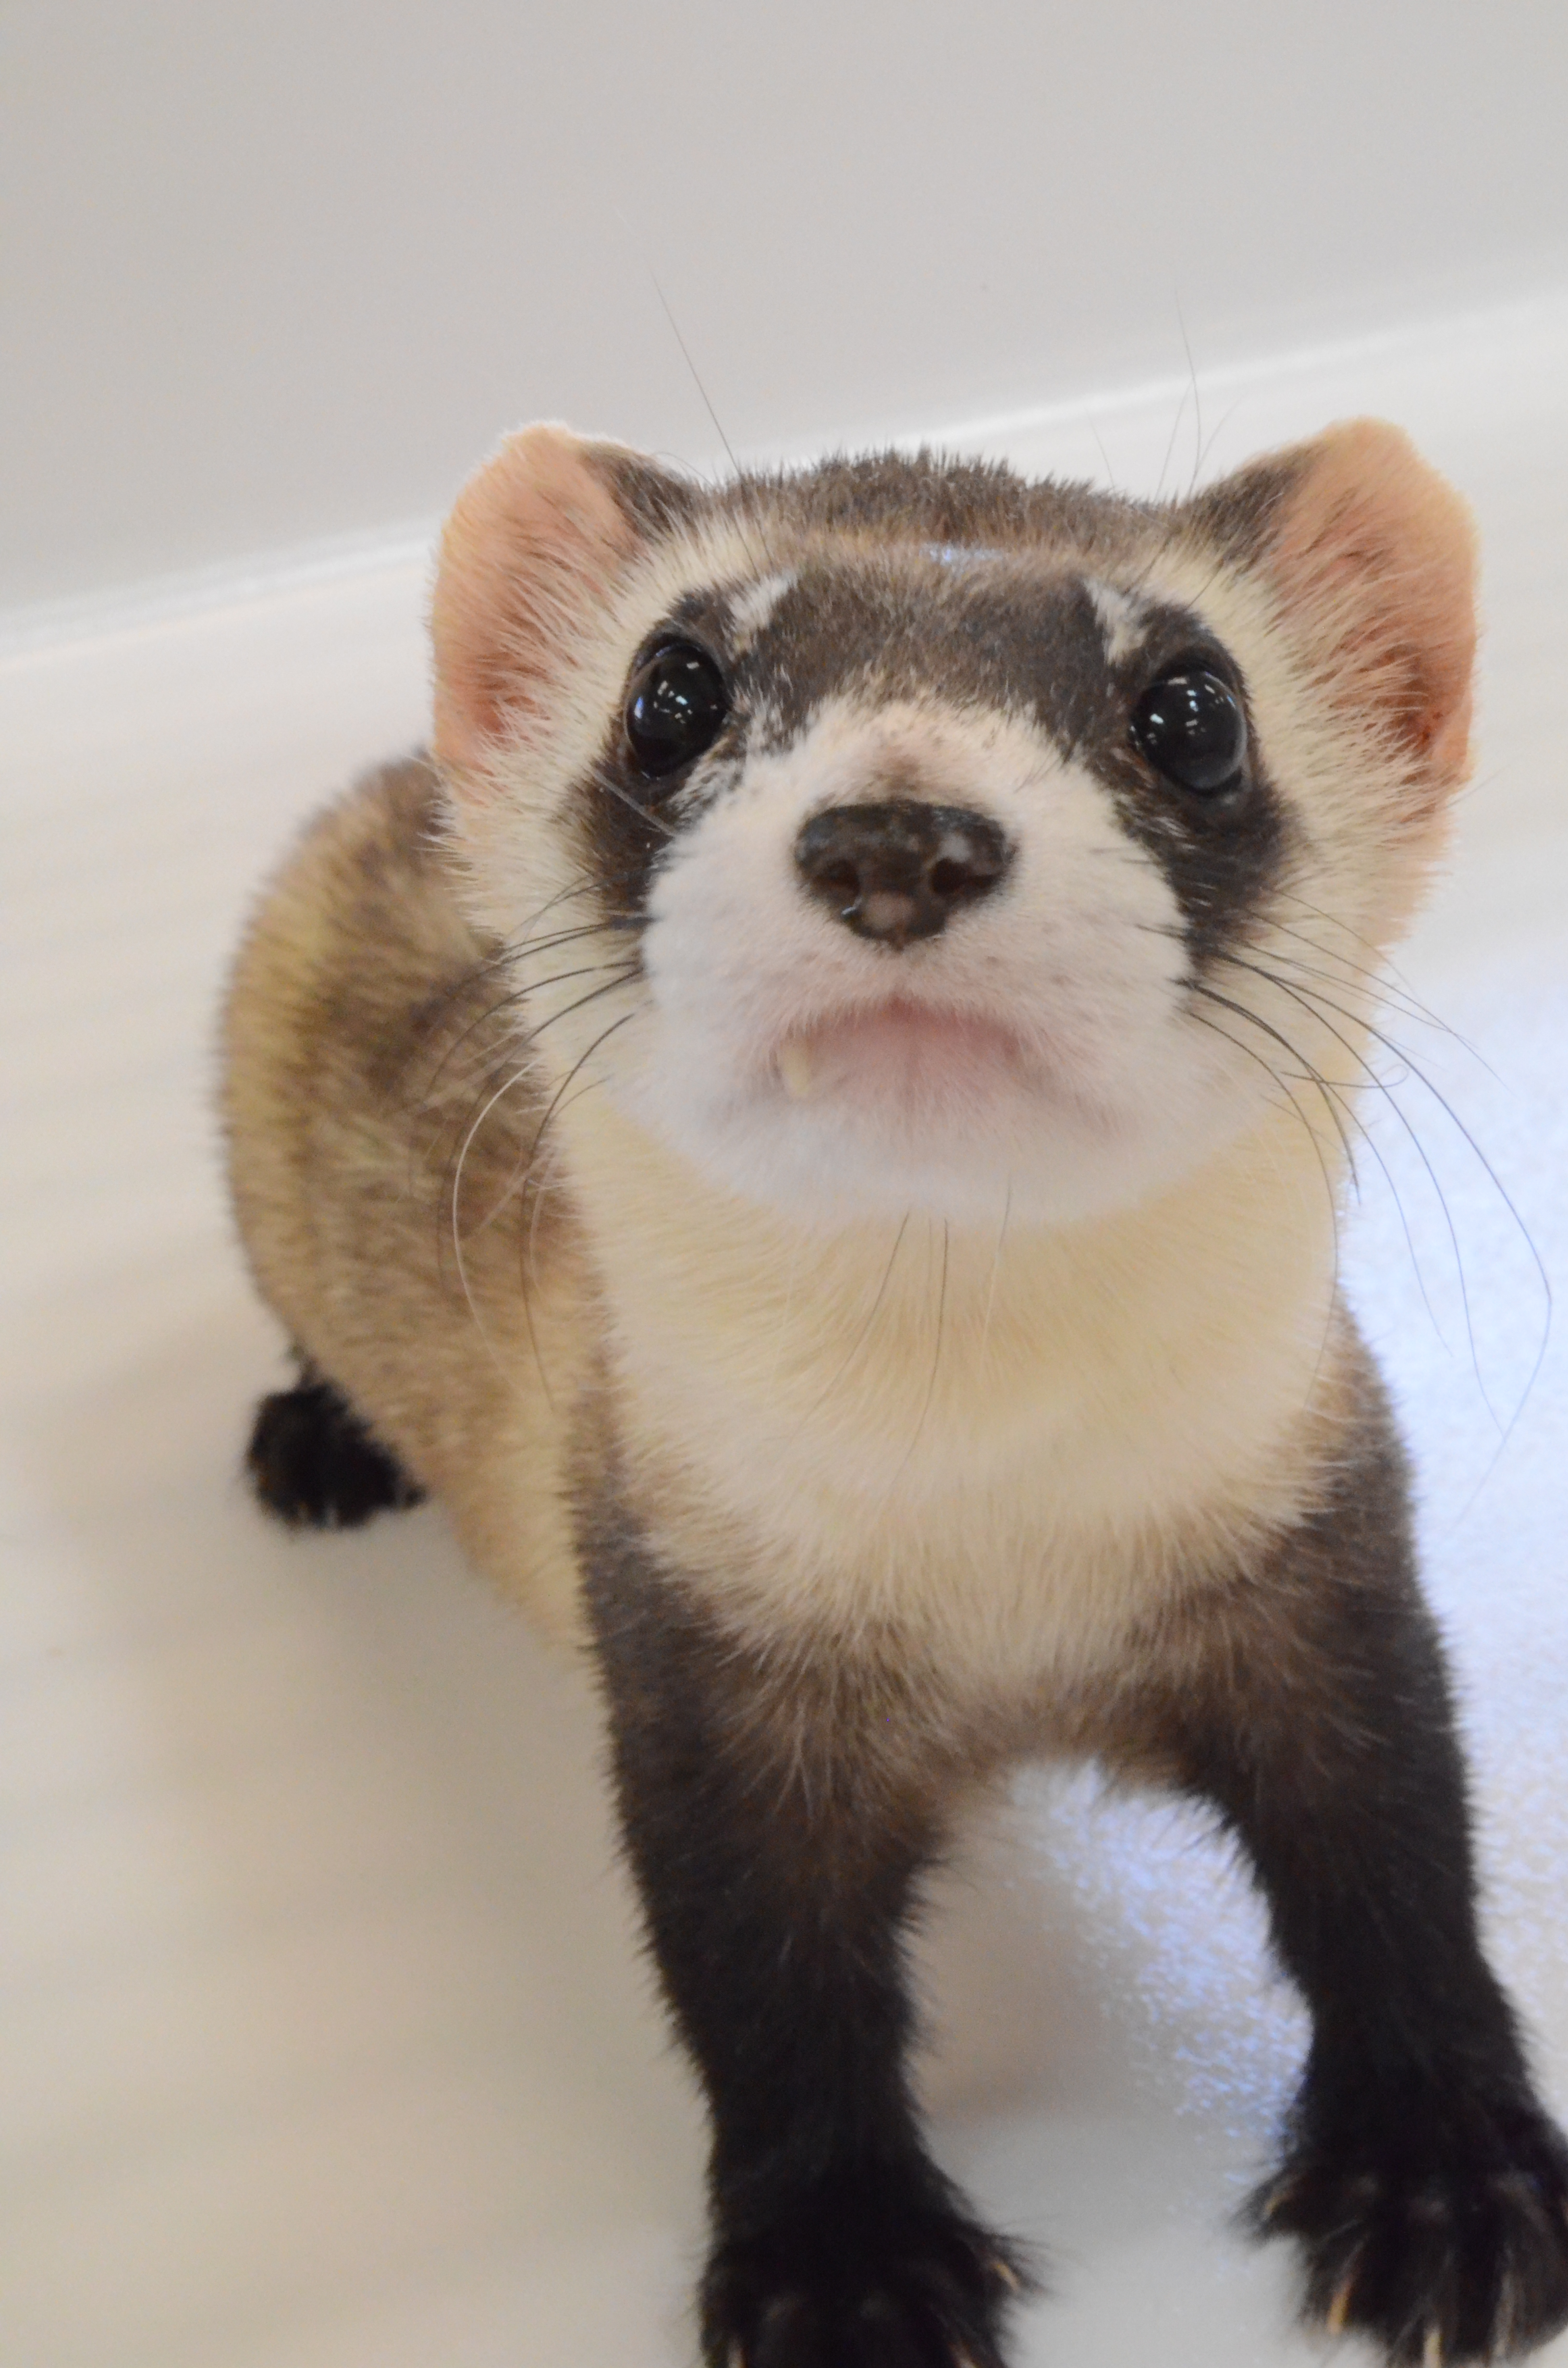 Image of Black footed ferret